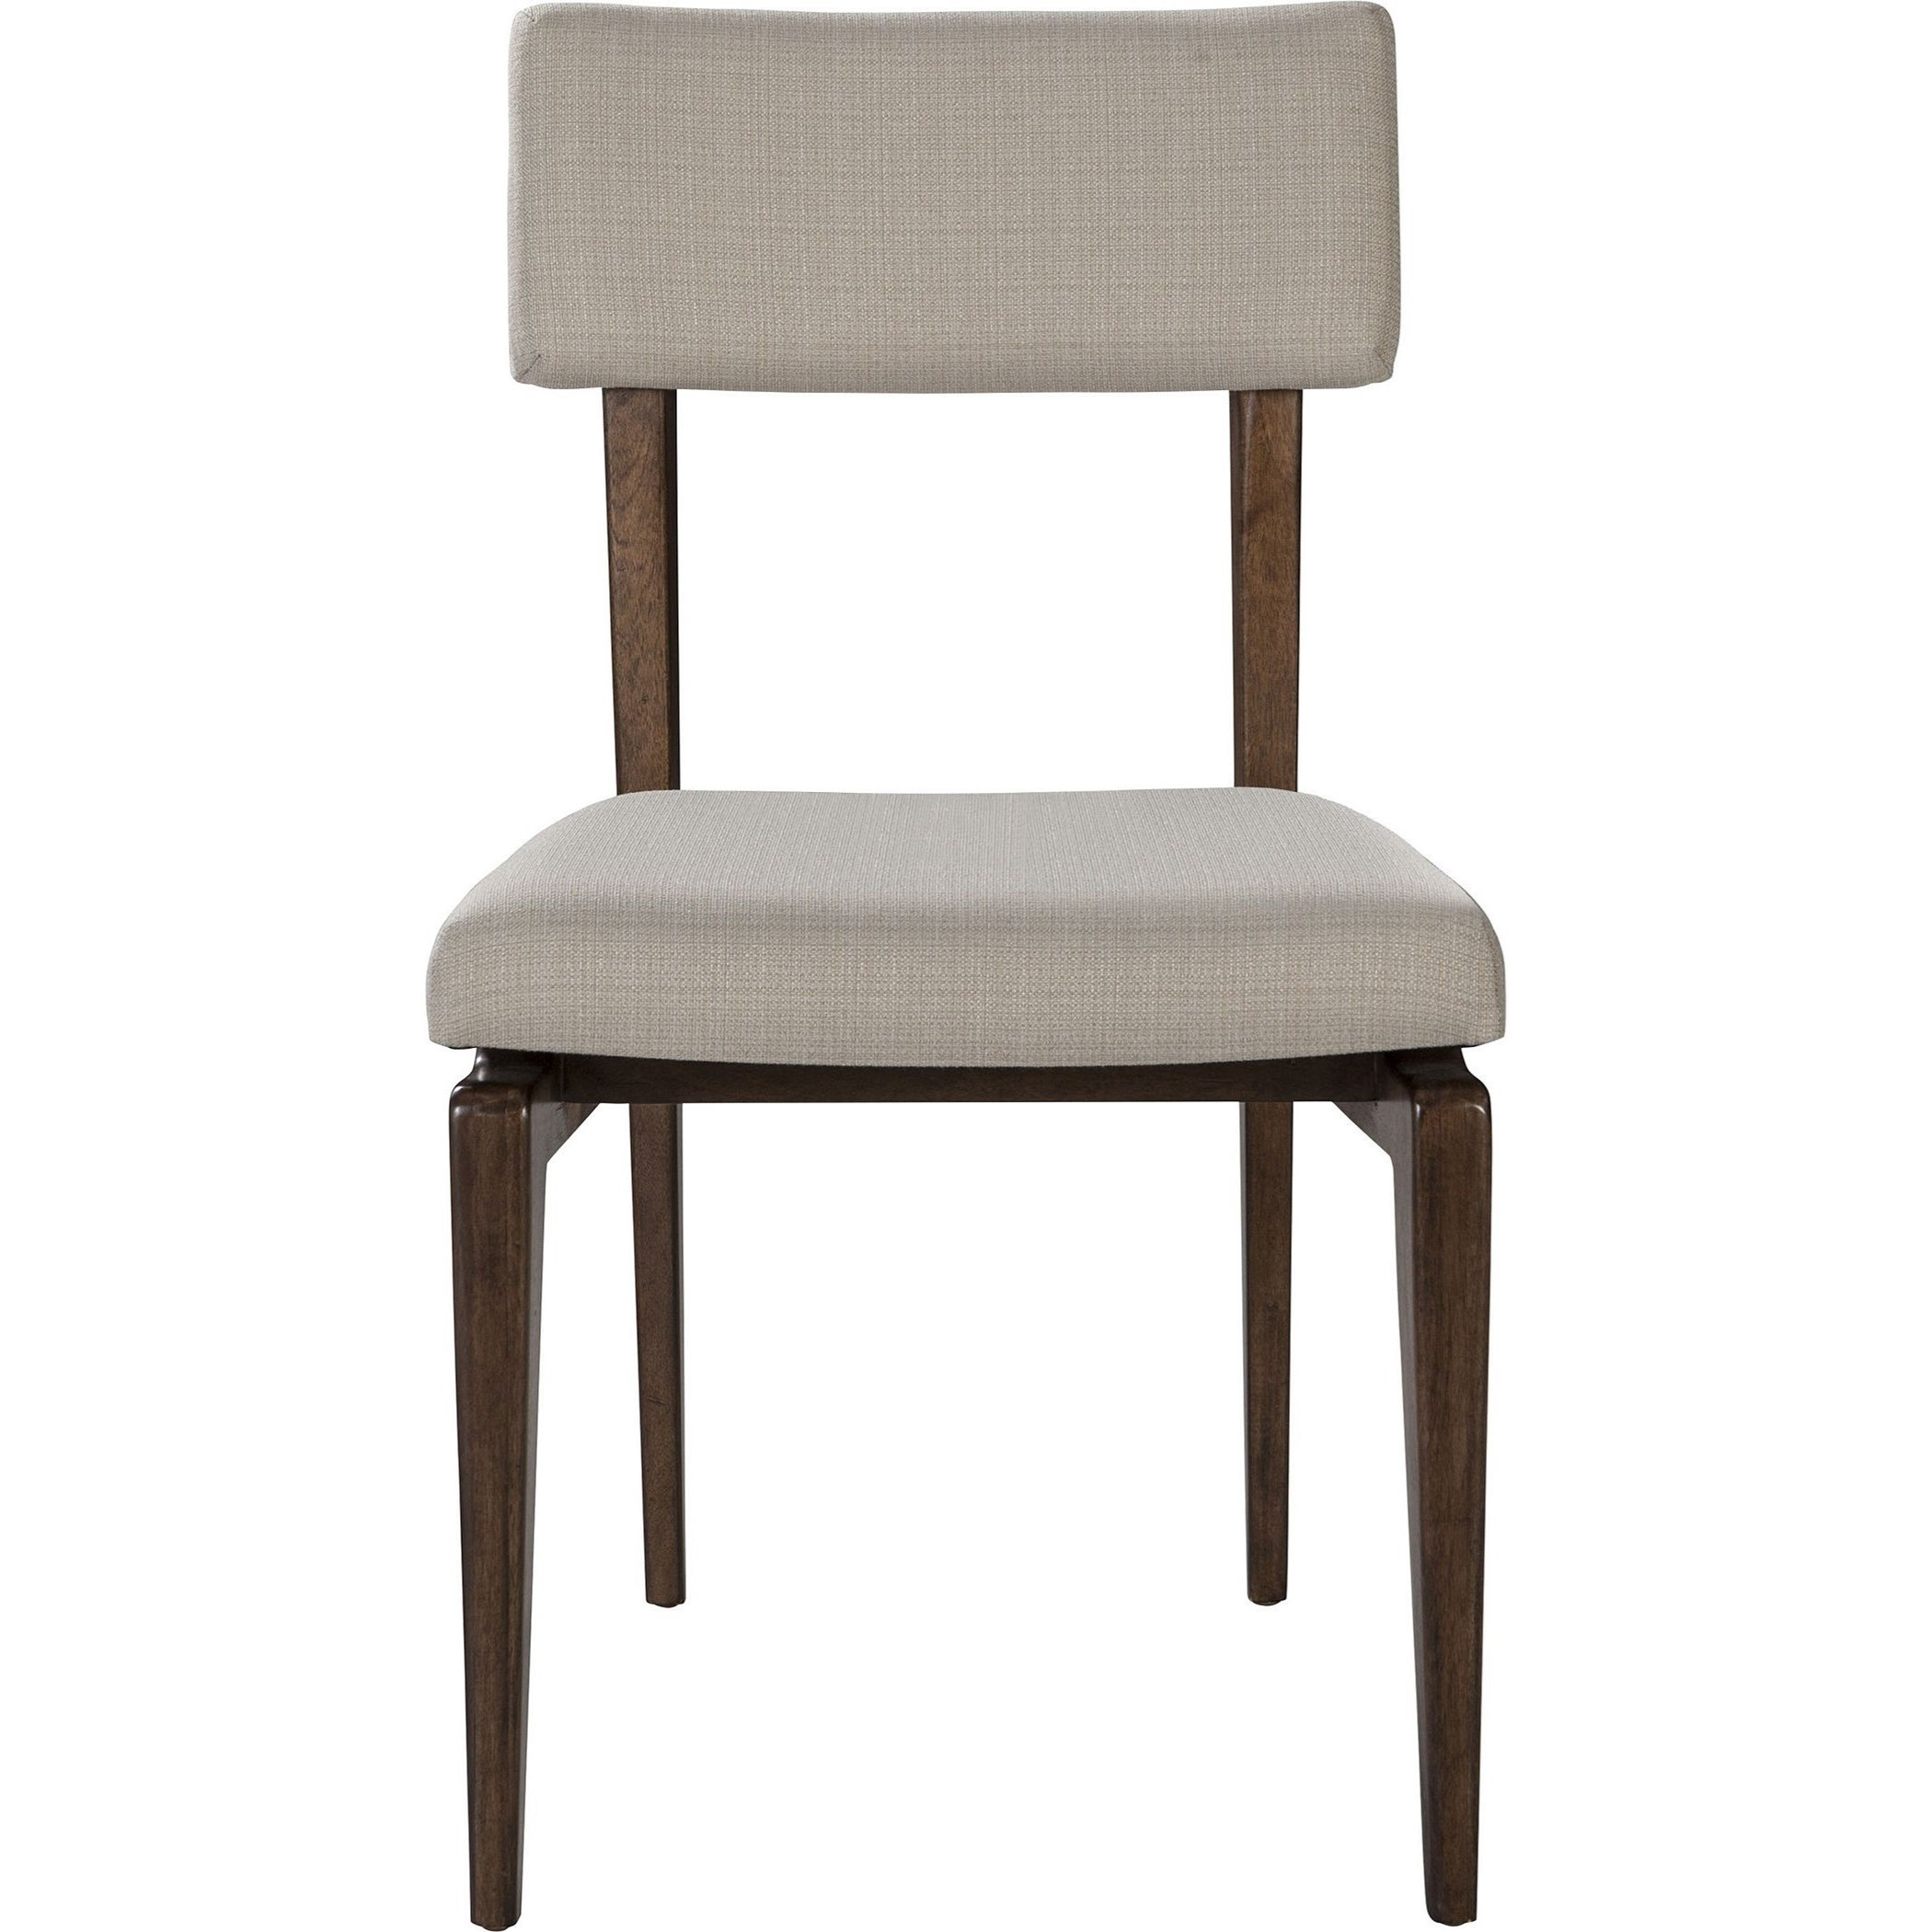 Sena Dining Side Chair by ED Ellen DeGeneres Crafted by Thomasville at C. S. Wo & Sons Hawaii